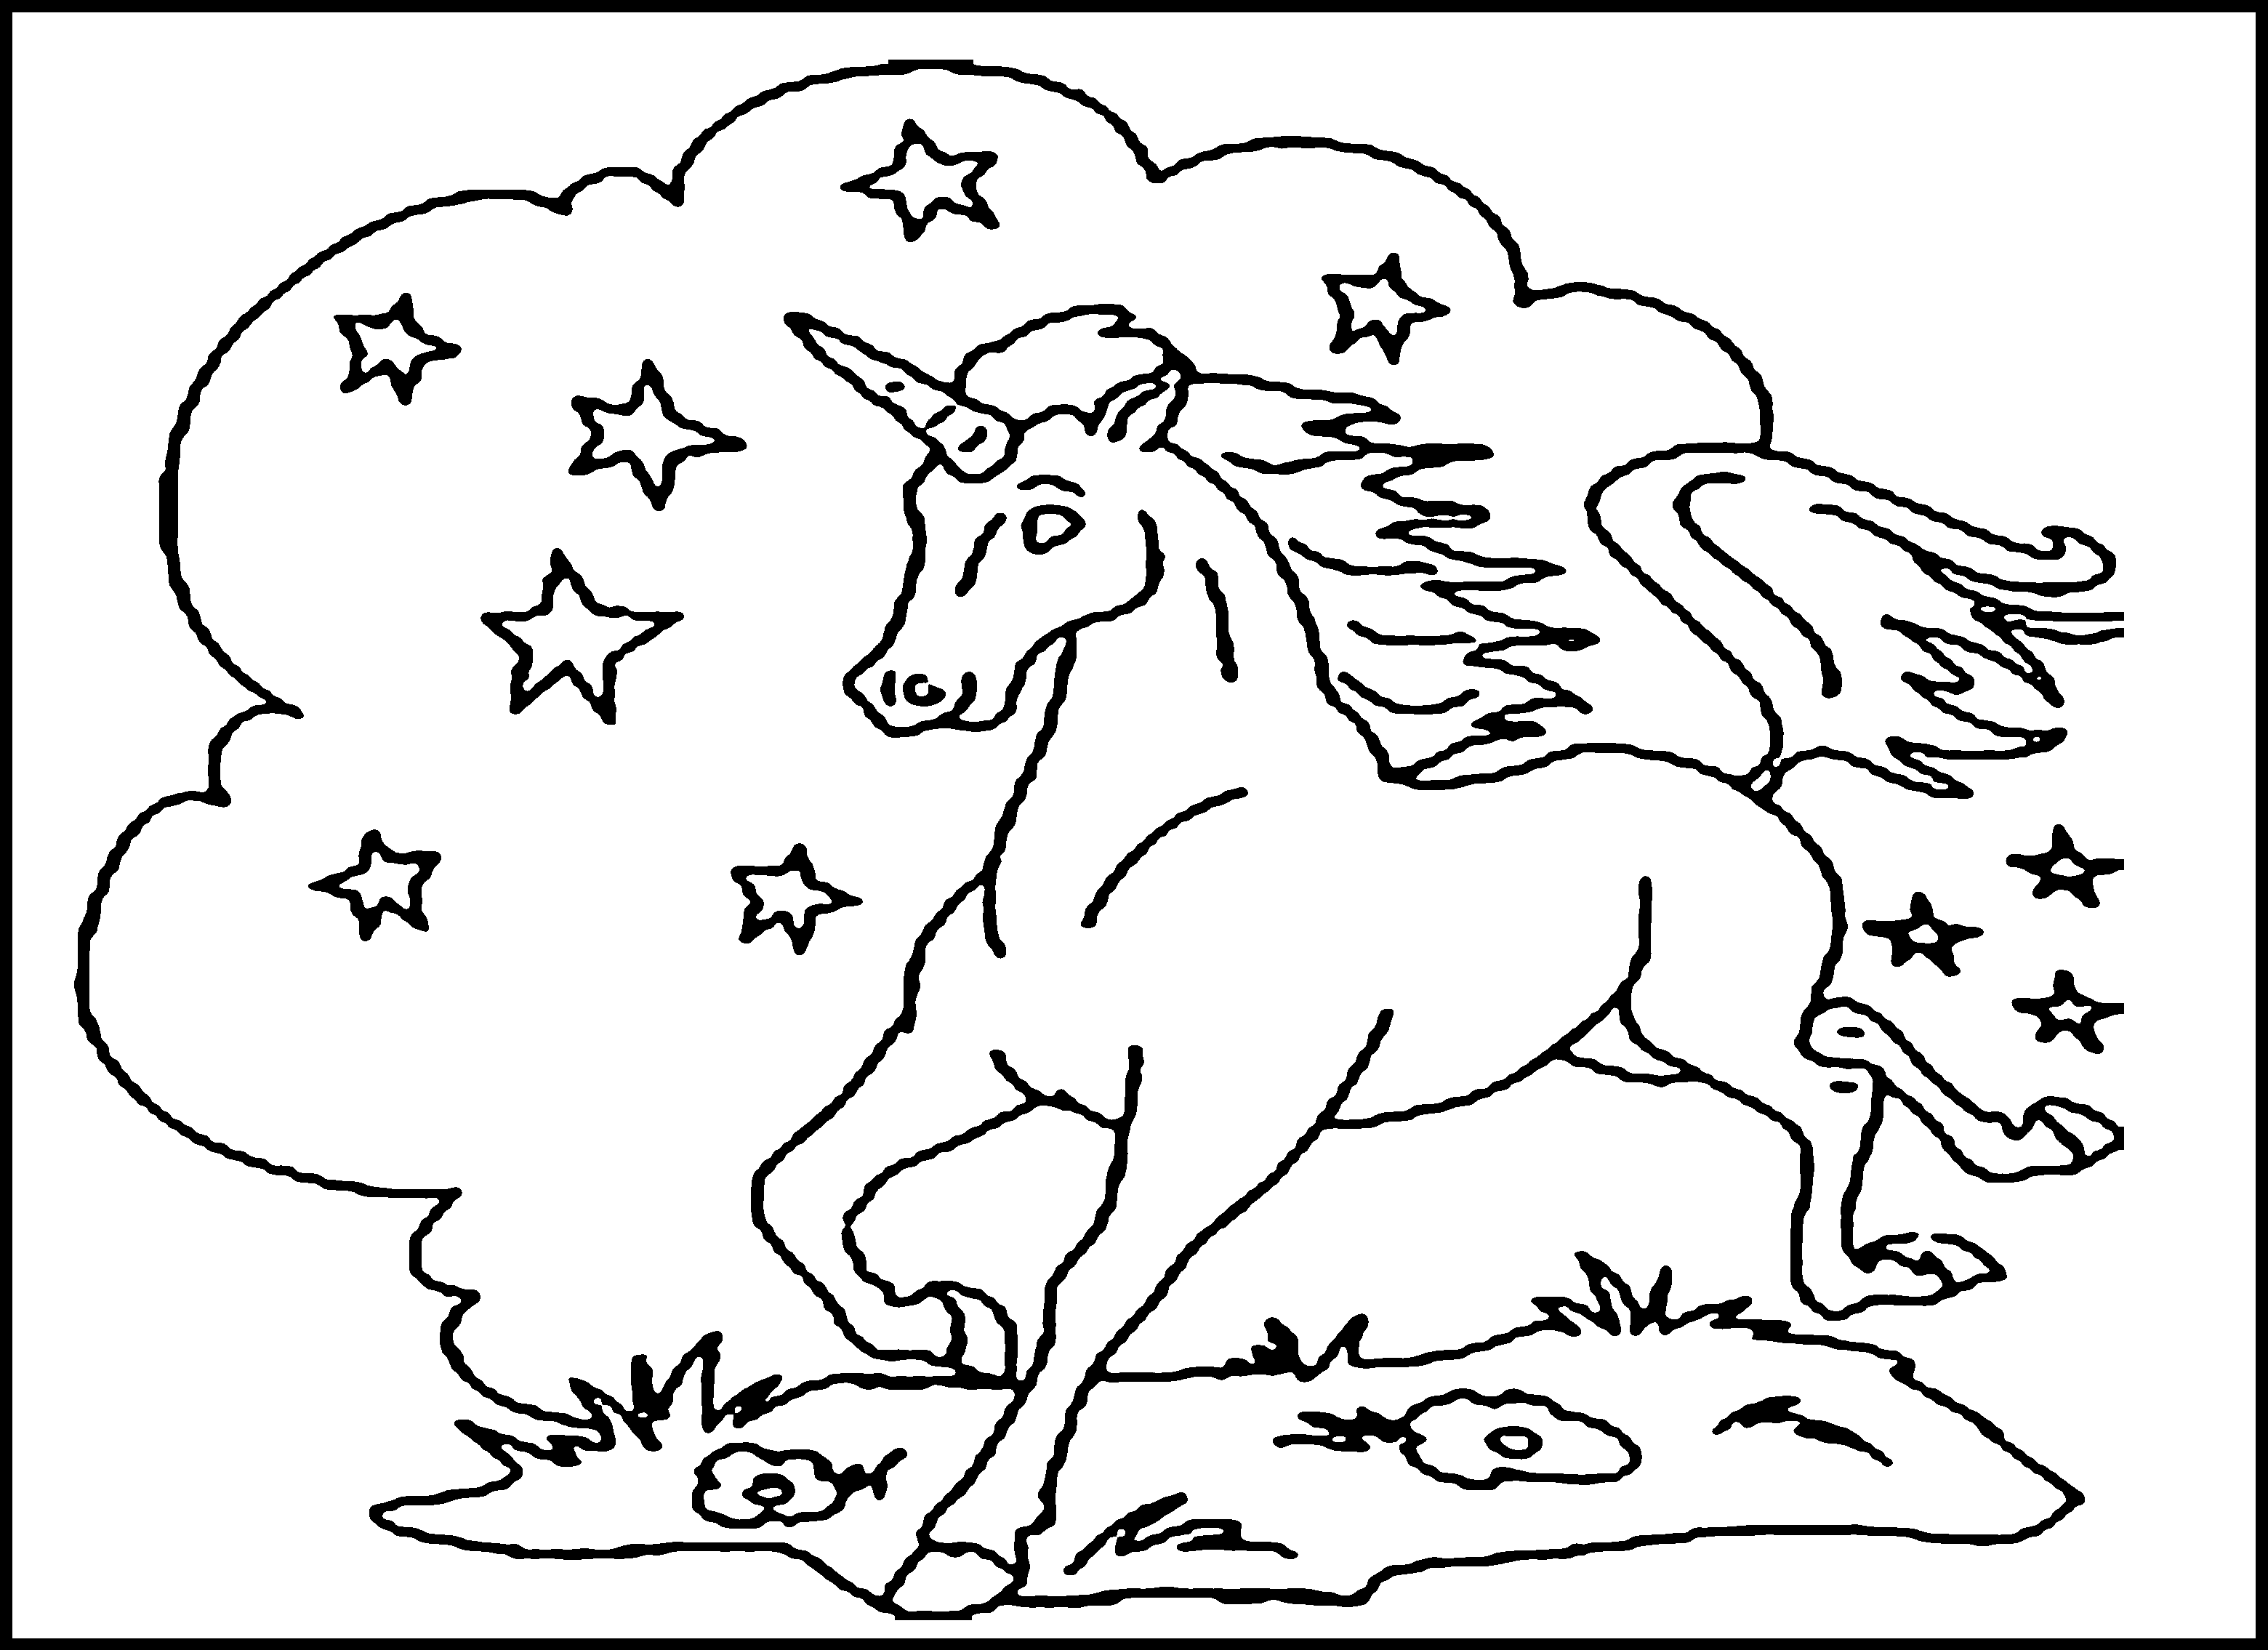 unicorn printable coloring pages - Coloring Pages Unicorns Printable